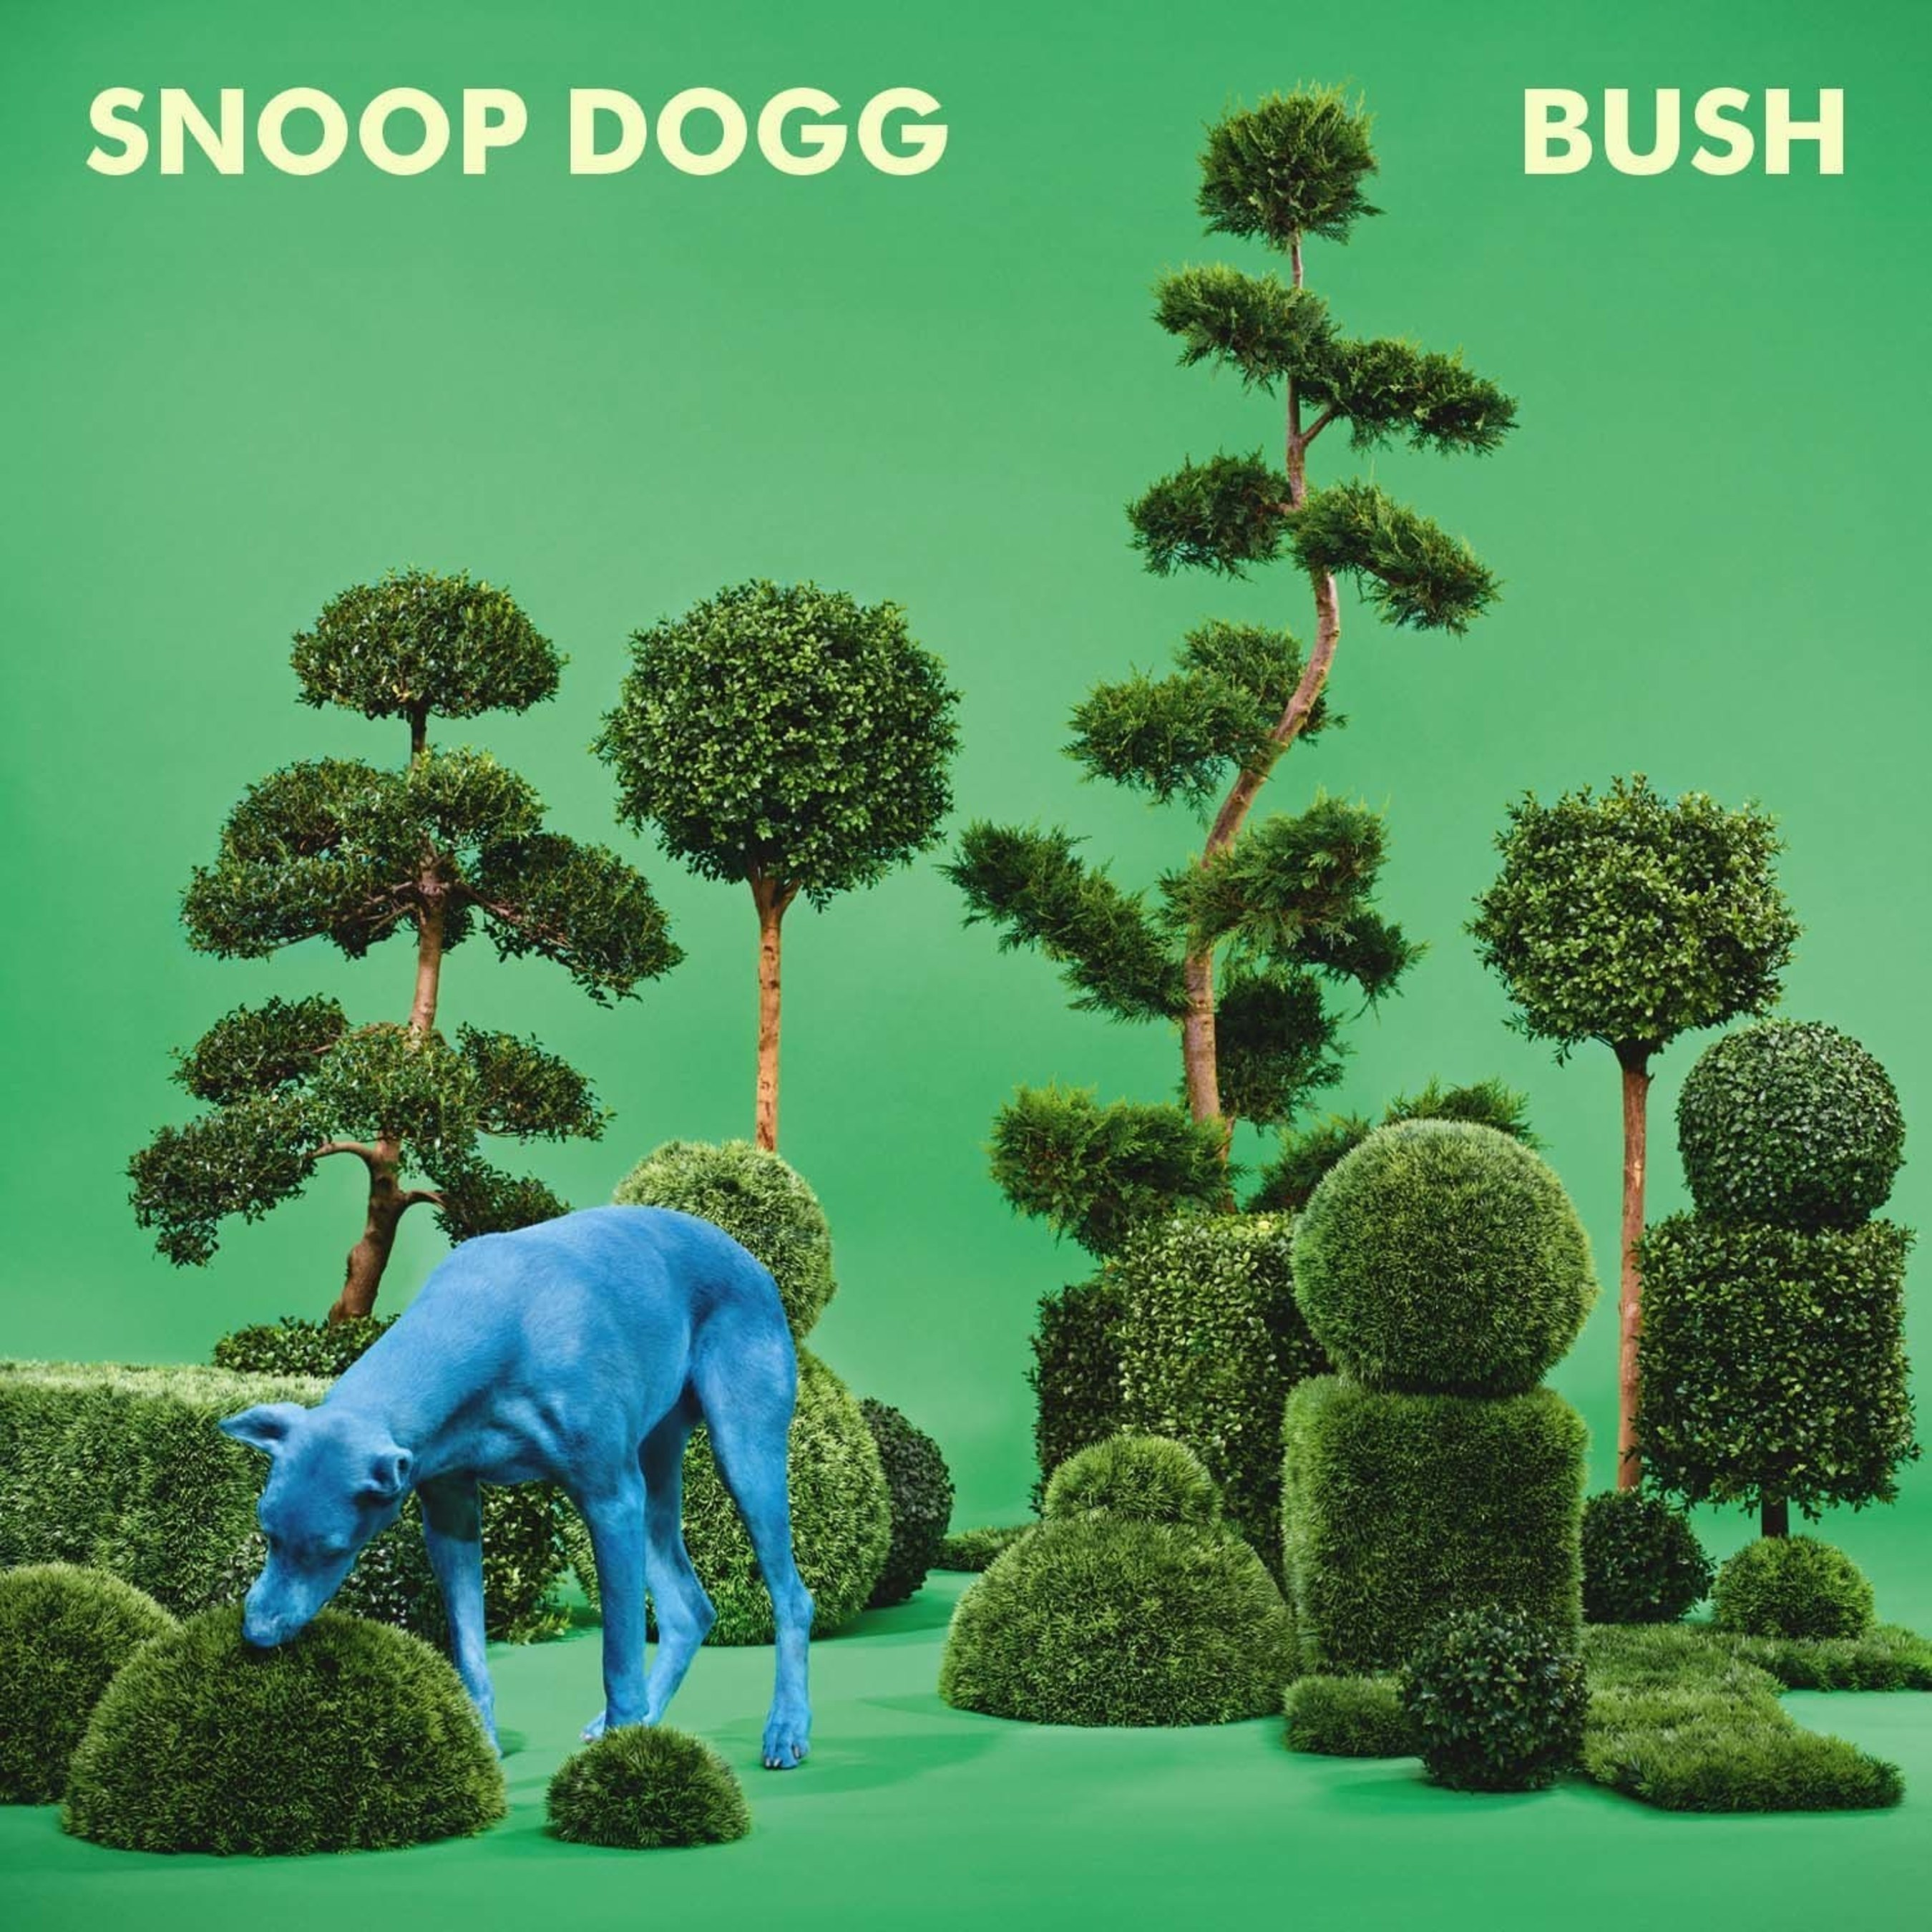 """Entertainment Icon Snoop Dogg Releases First Single """"Peaches N Cream"""" From Upcoming New Album BUSH Produced By Pharrell Williams"""